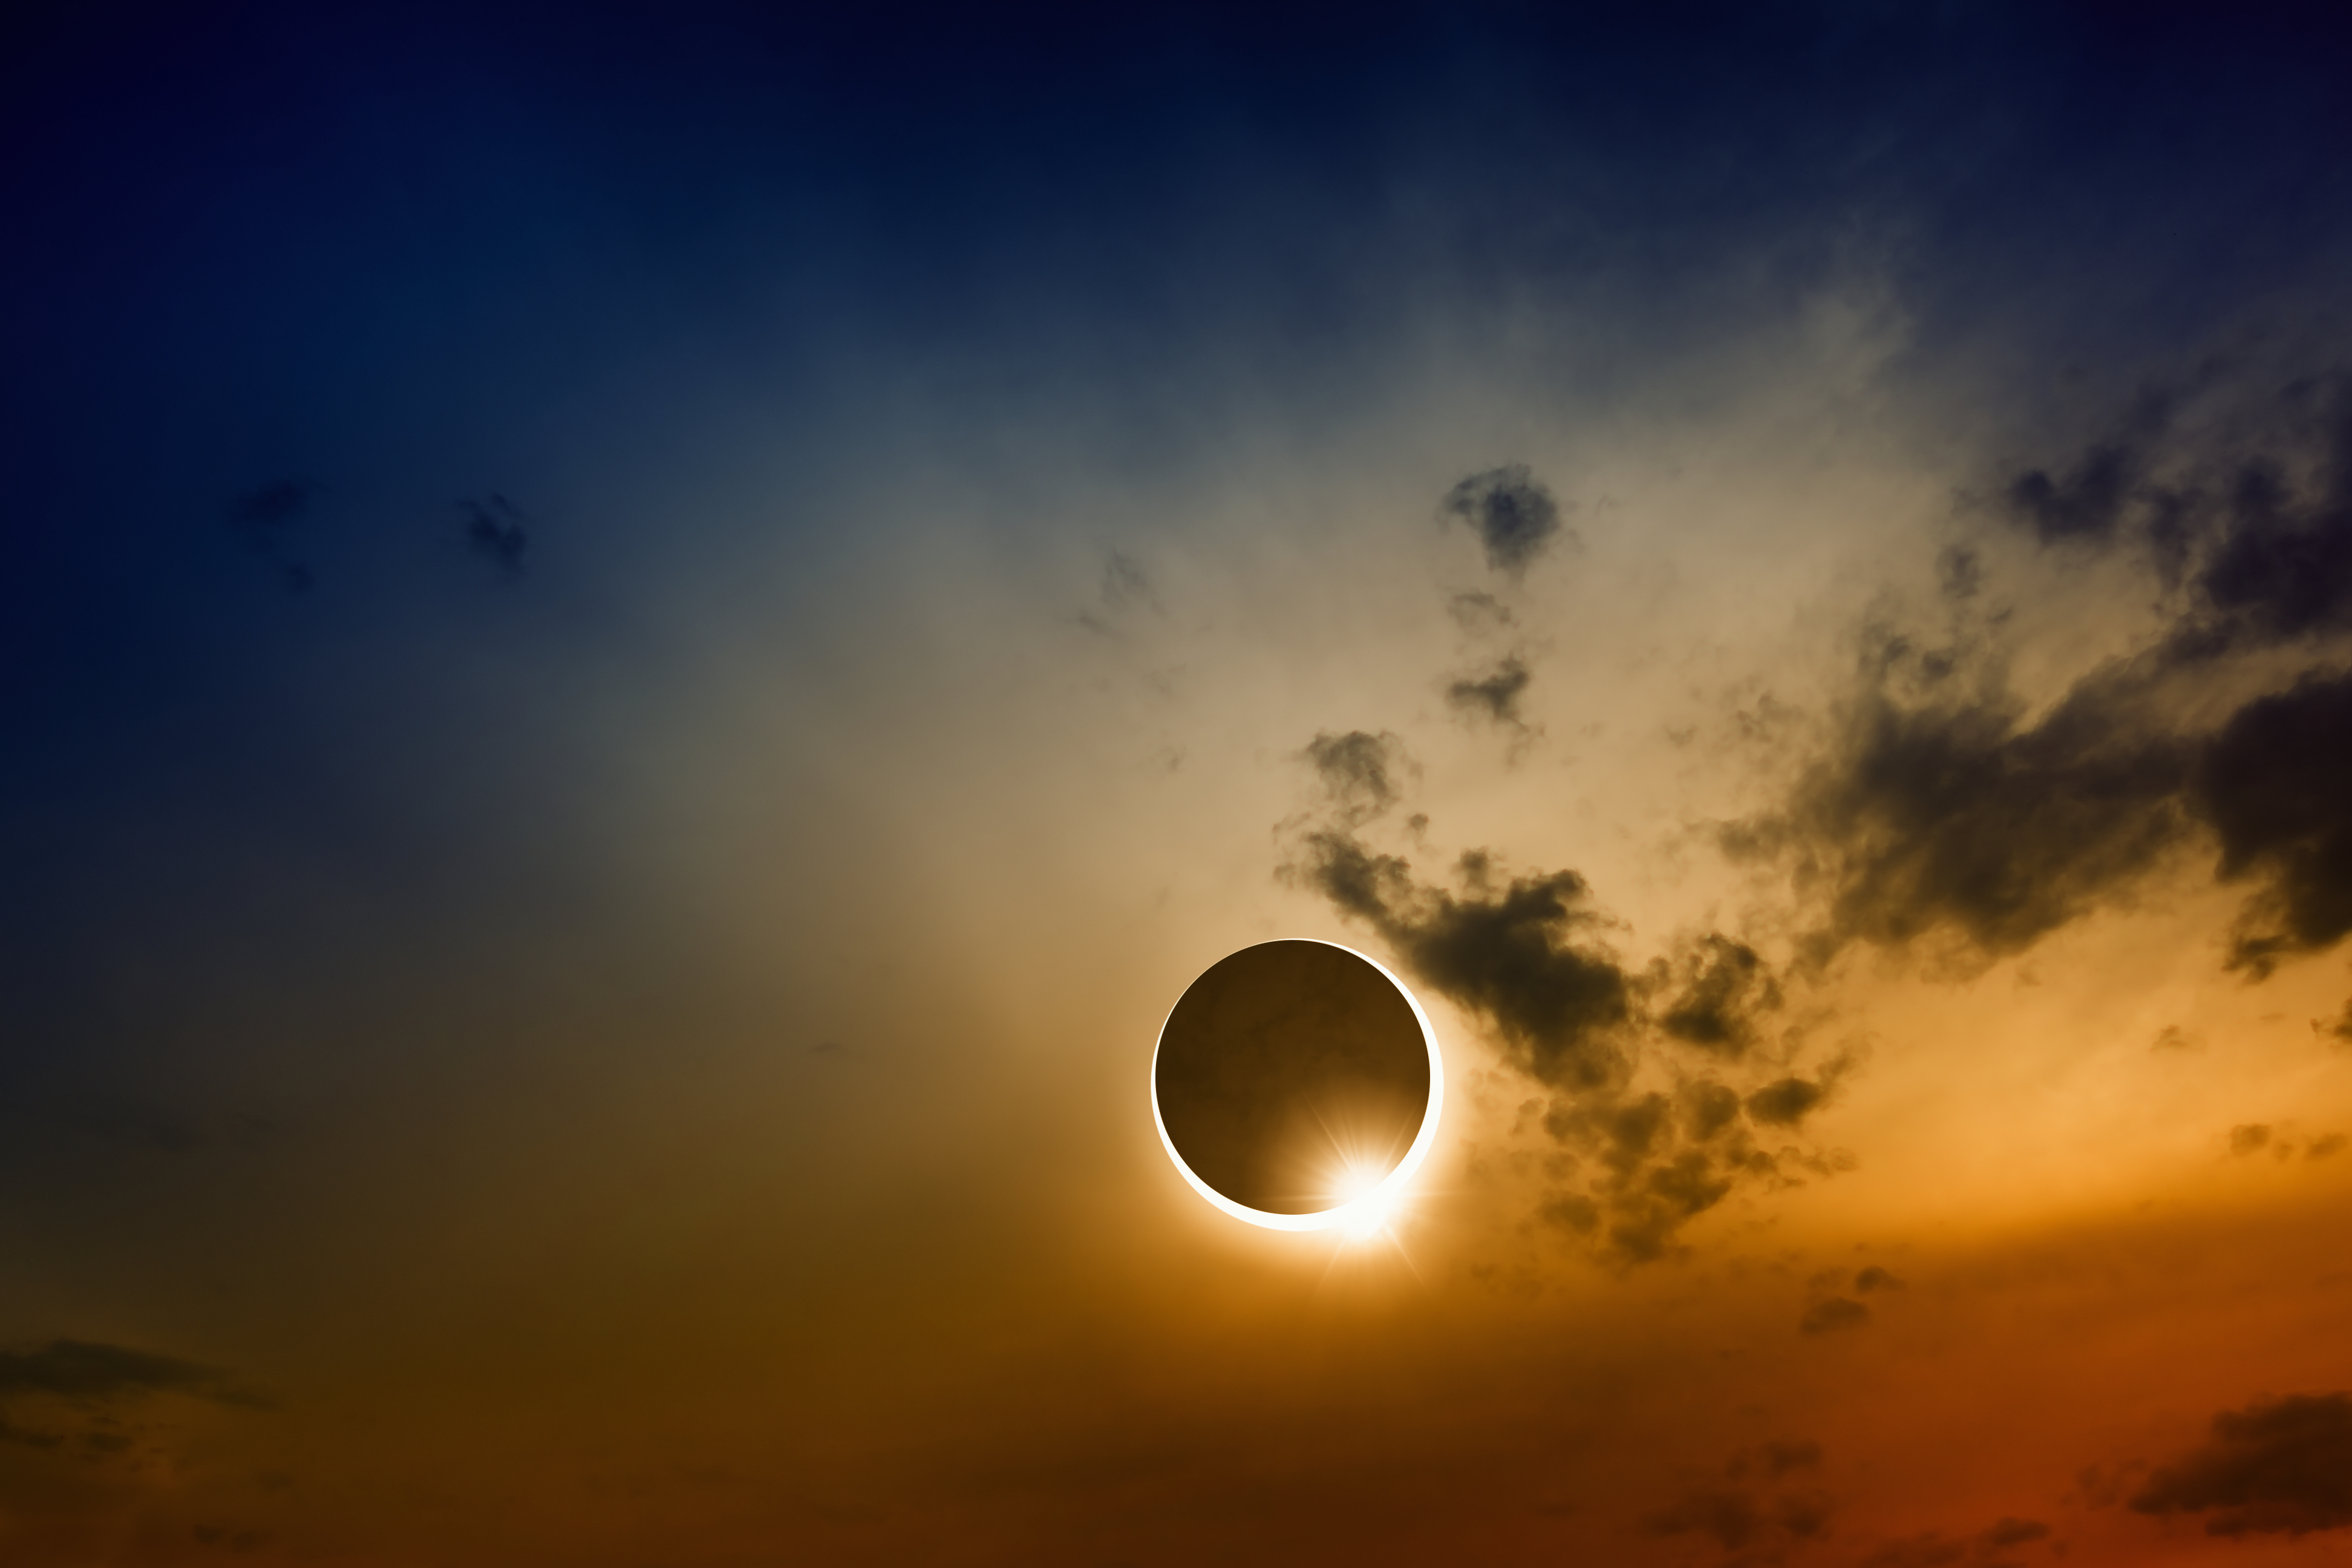 Total Eclipse of the Sun Celebrated in Unique Style Aboard Carnival Cruise Line